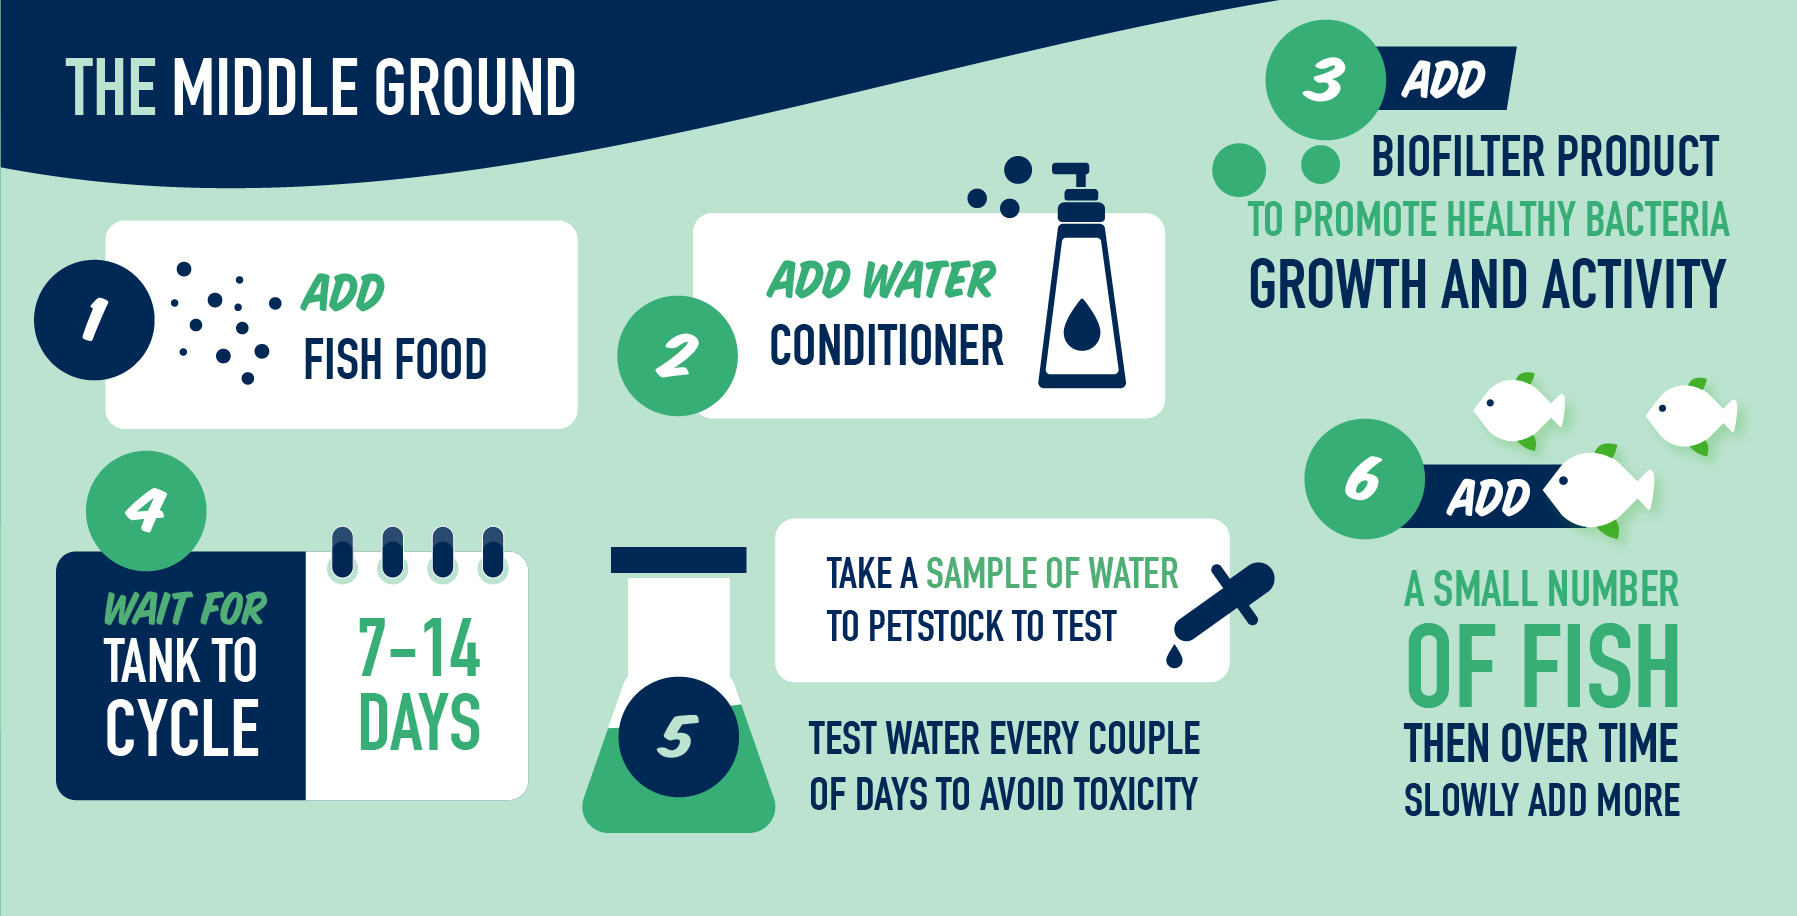 The Middle Ground: 1. Add fish food. 2. Add water conditioner. 3. Add biofilter product to promote healthy bacteria growth and activity. 4. Wait 7 to 14 days for tank to cycle. 5. Take a sample of water to PETstock to test. Test water every couple of days to avoid toxicity. 6. Add a small number of fish then over time slowly add more.